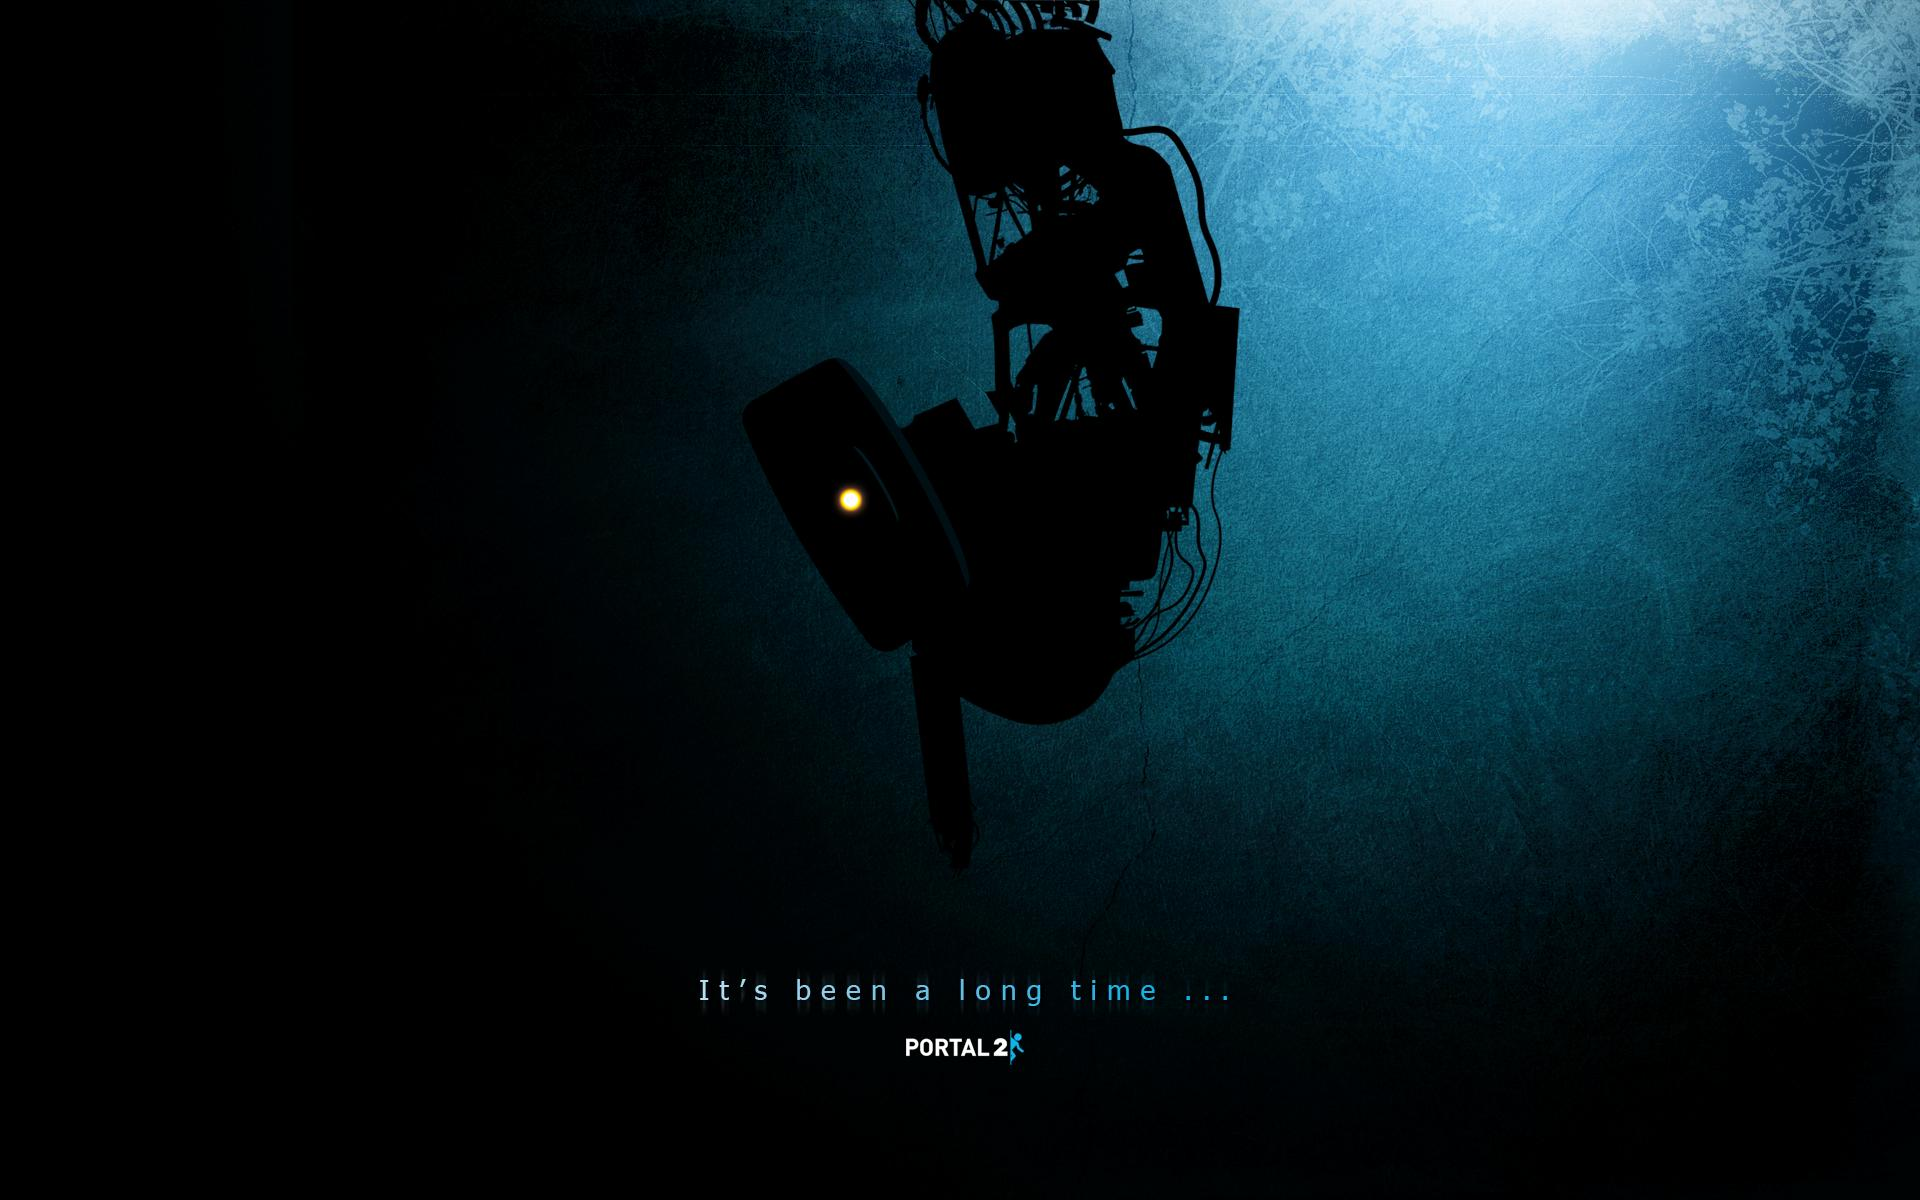 Its been a long time Portal 2 Wallpaper HD